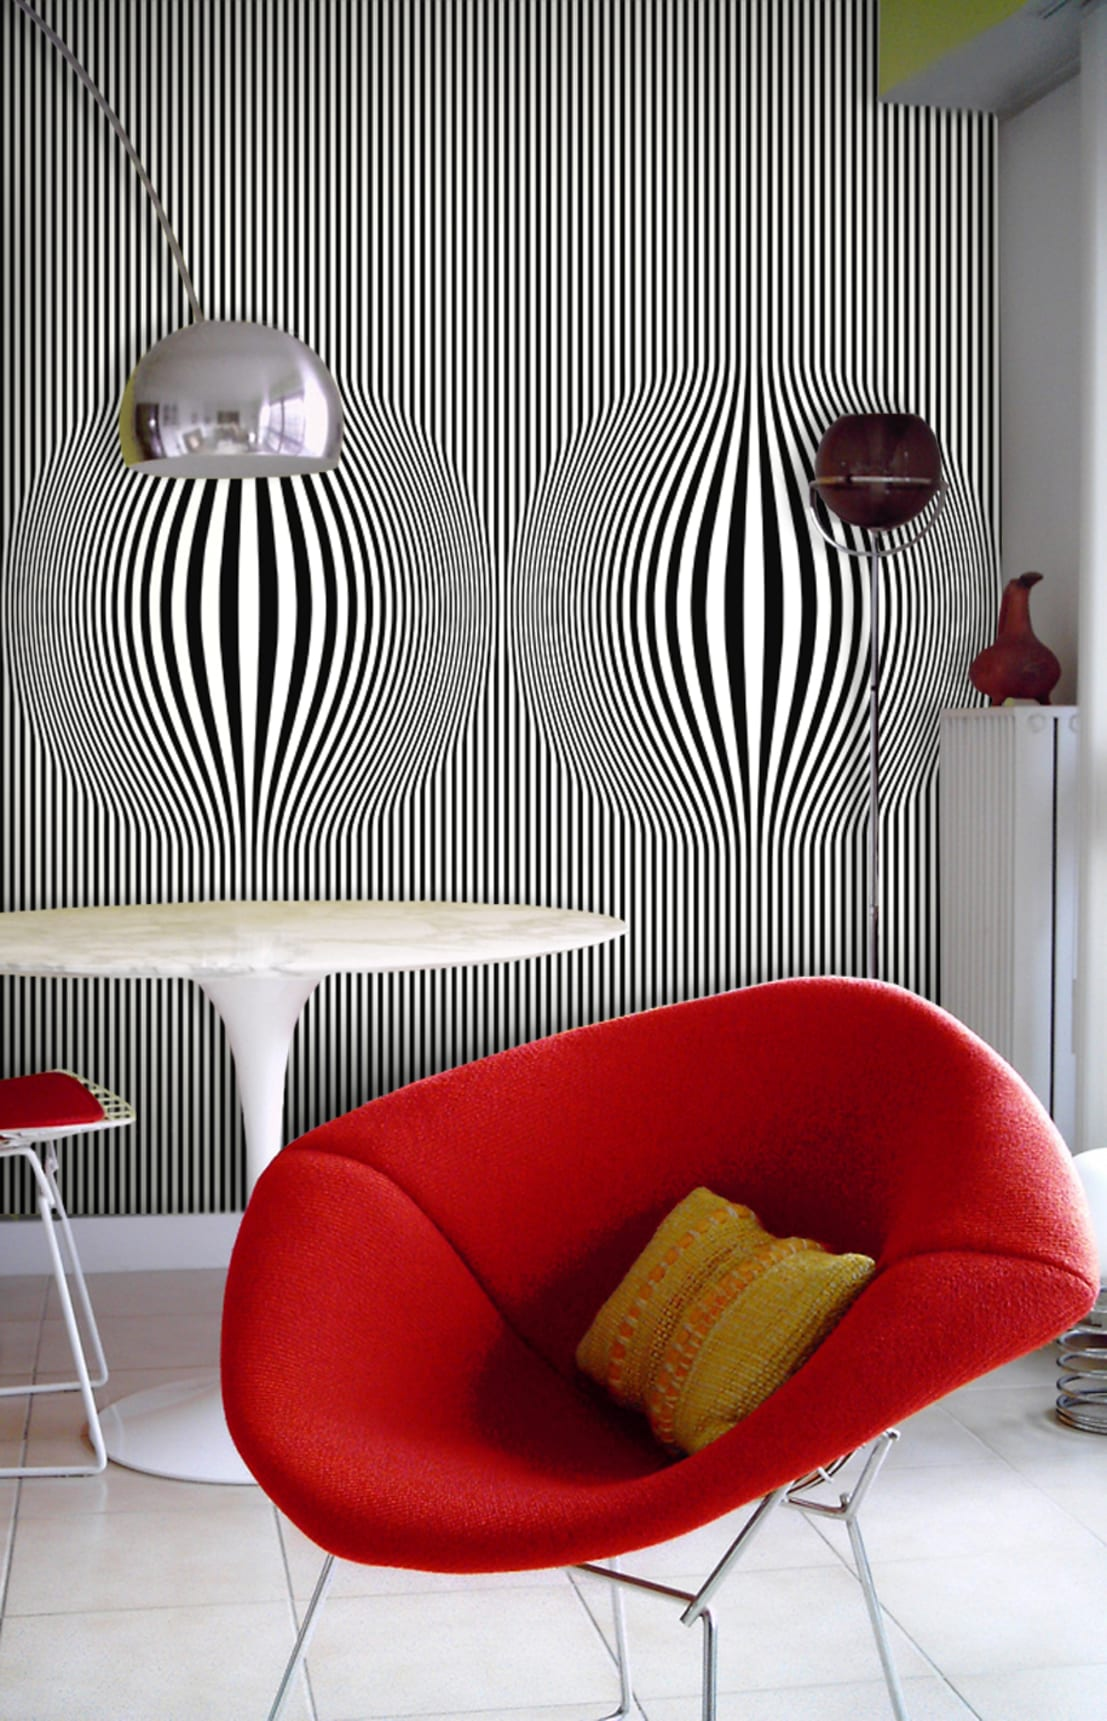 Home decor 3d wallpaper ideas for Home decor 3d wallpaper